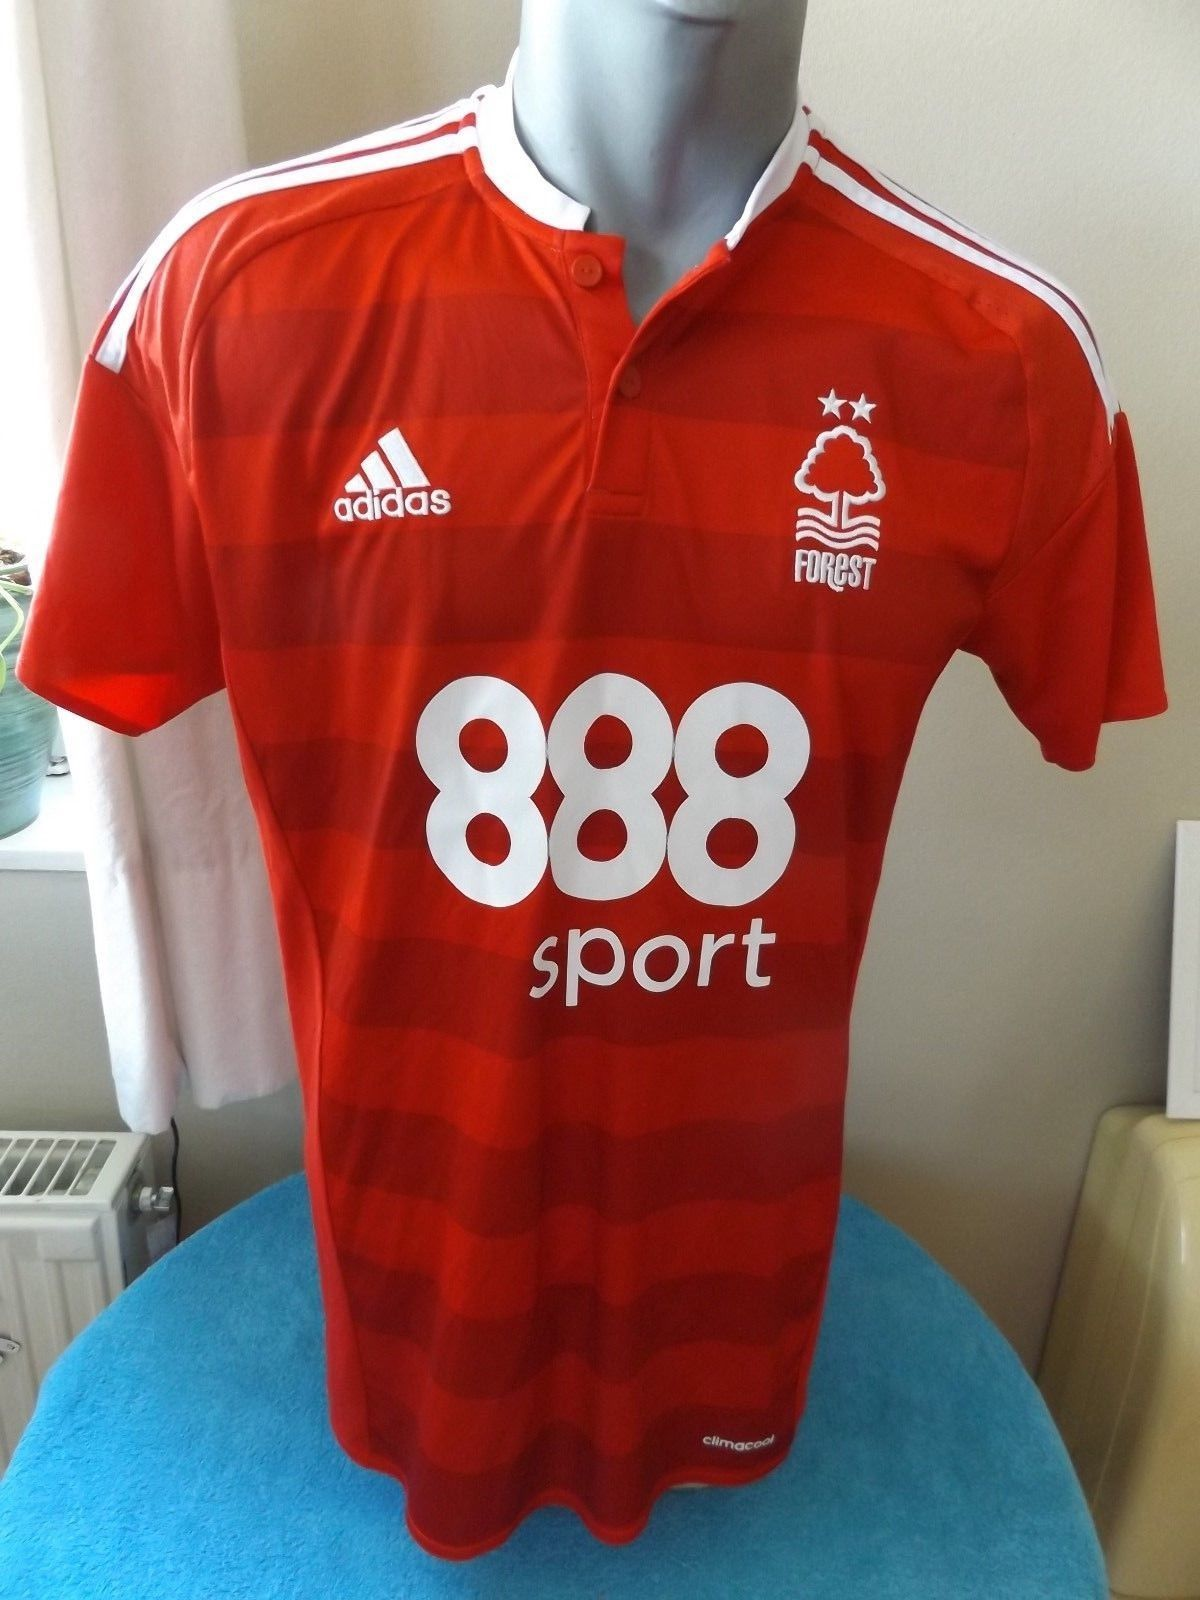 99432ad6d My eBay Active. Find this Pin and more on Soccer Jerseys for Sale ...